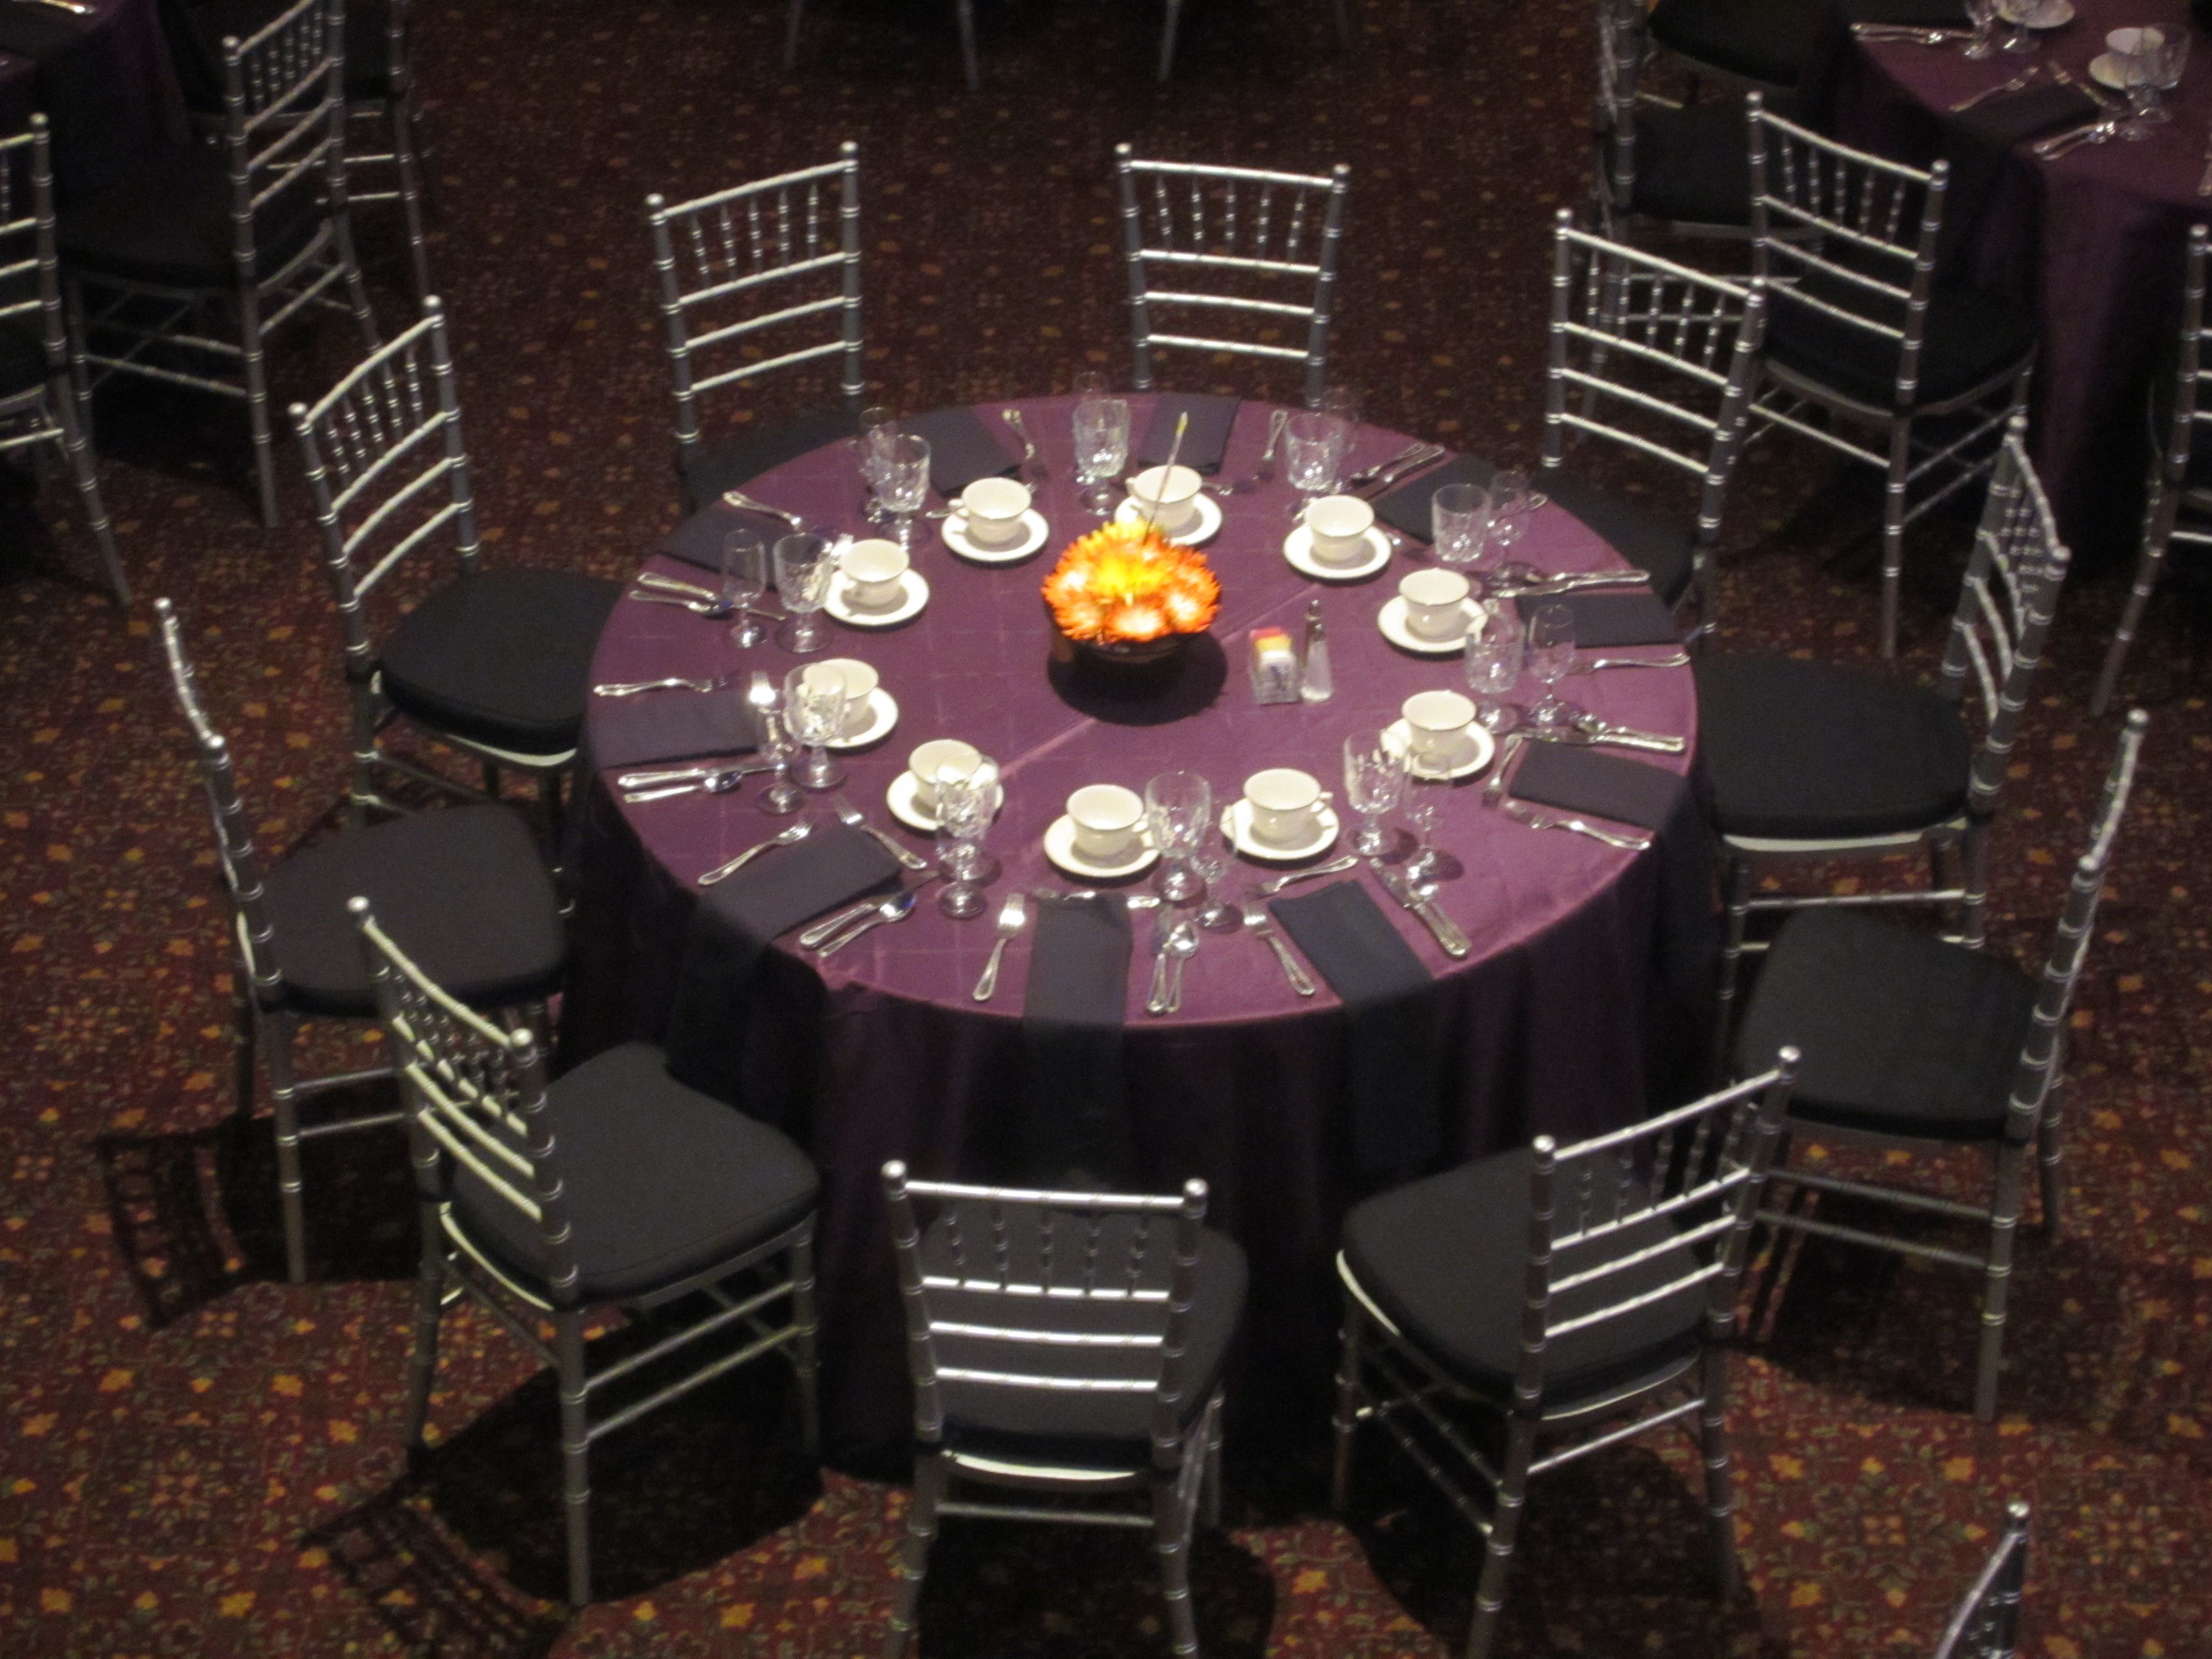 Pretty room layout with purple pintuck tablecloths and silver